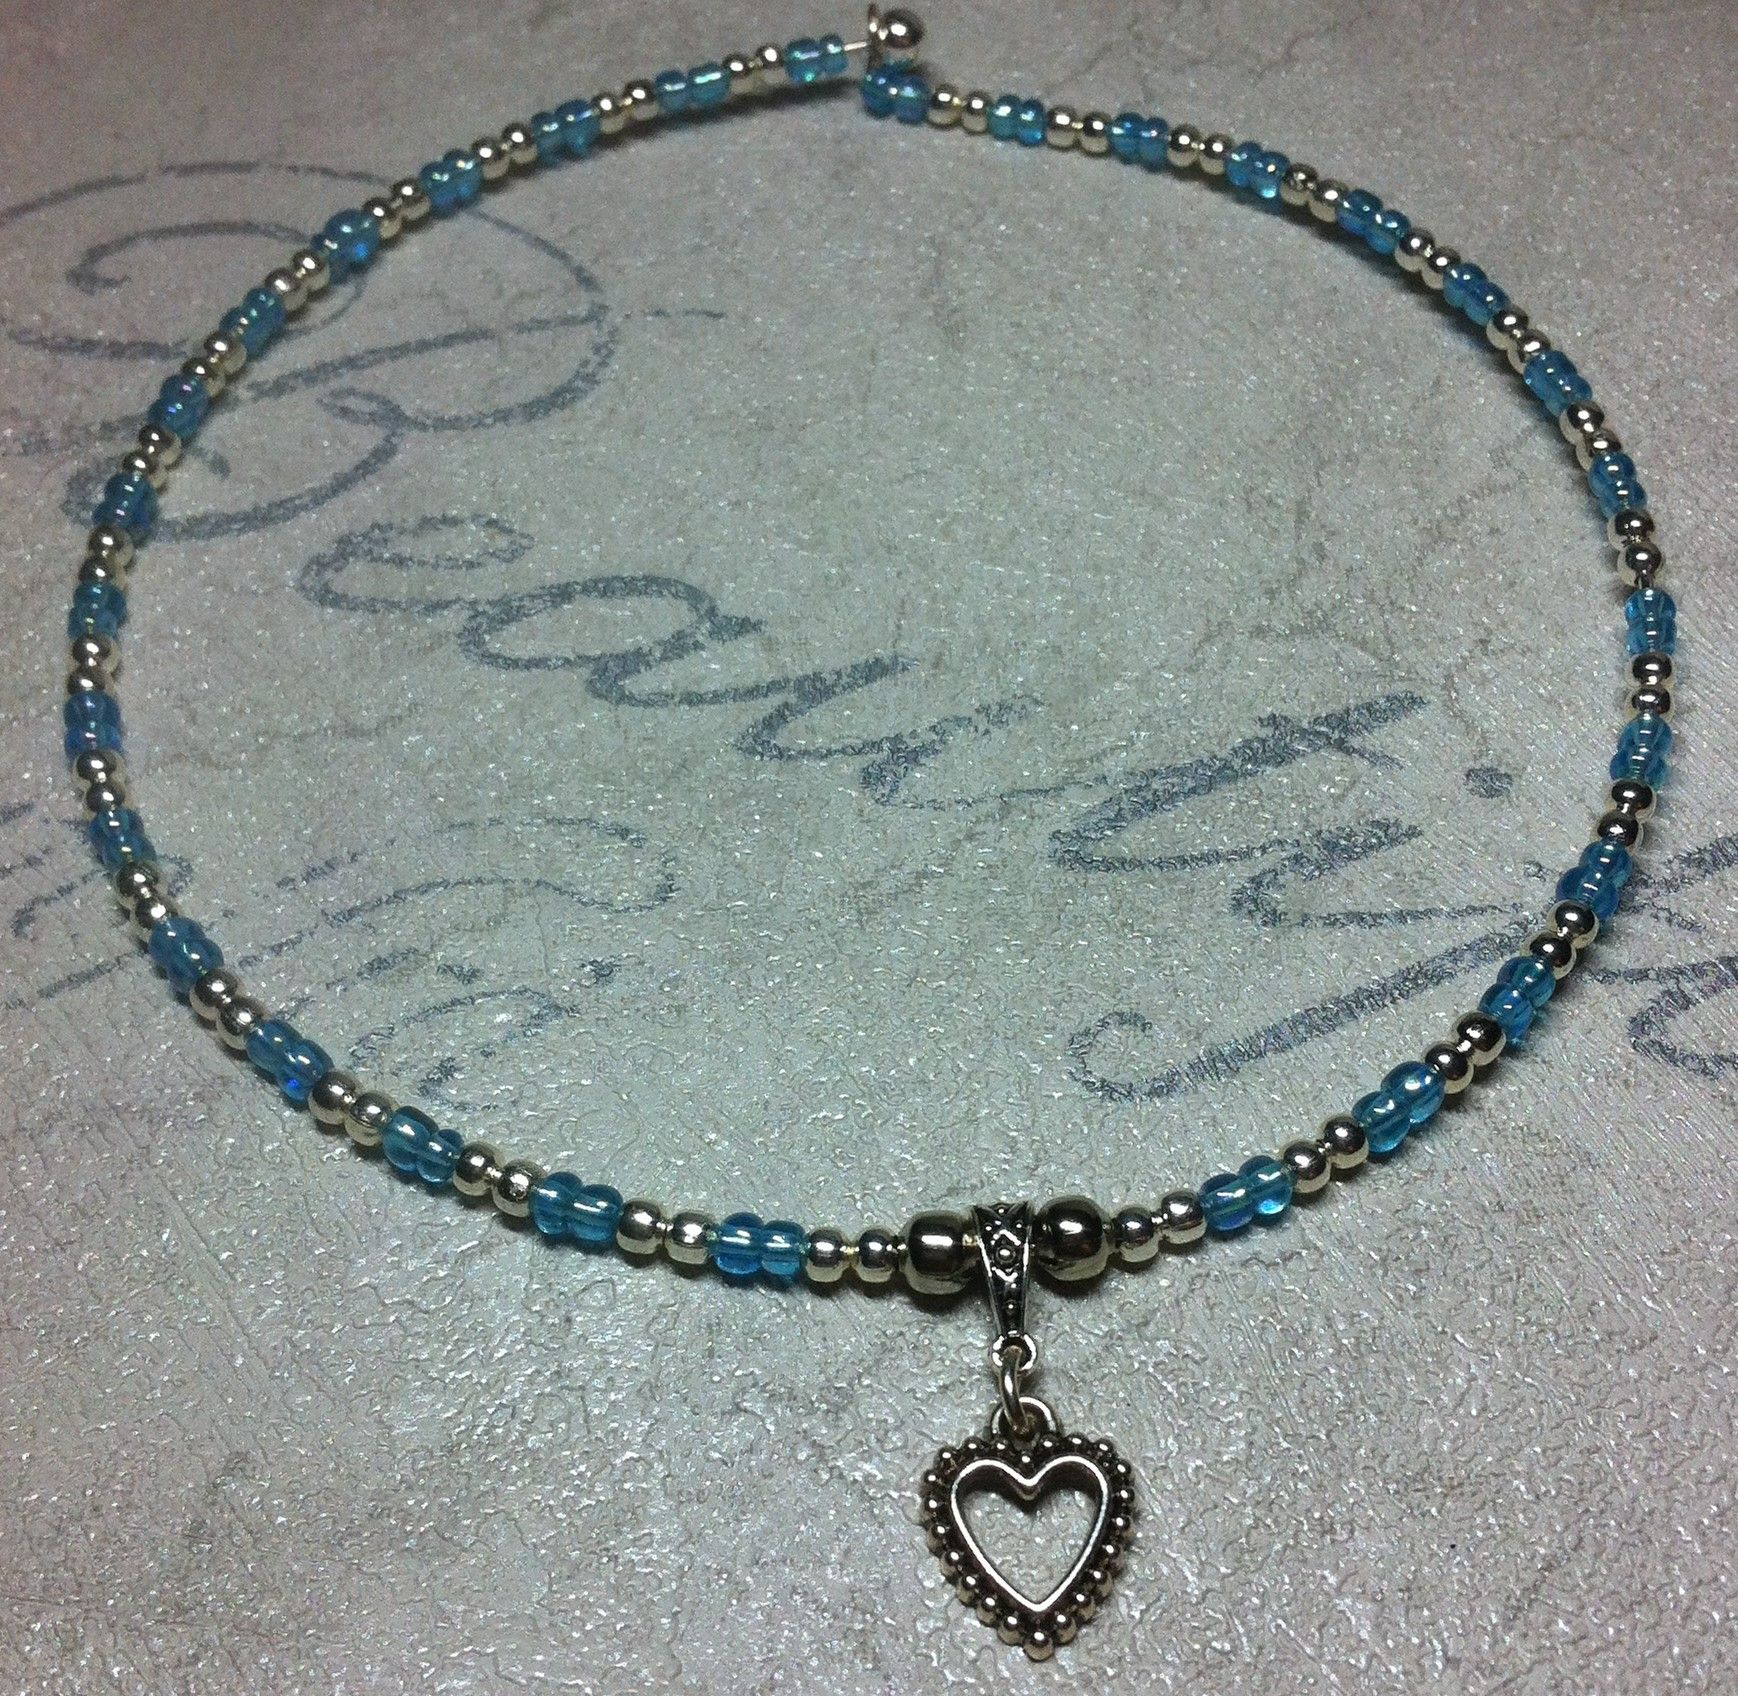 Handmade blue and pearl seed beads on wire choker with hollow heart charm